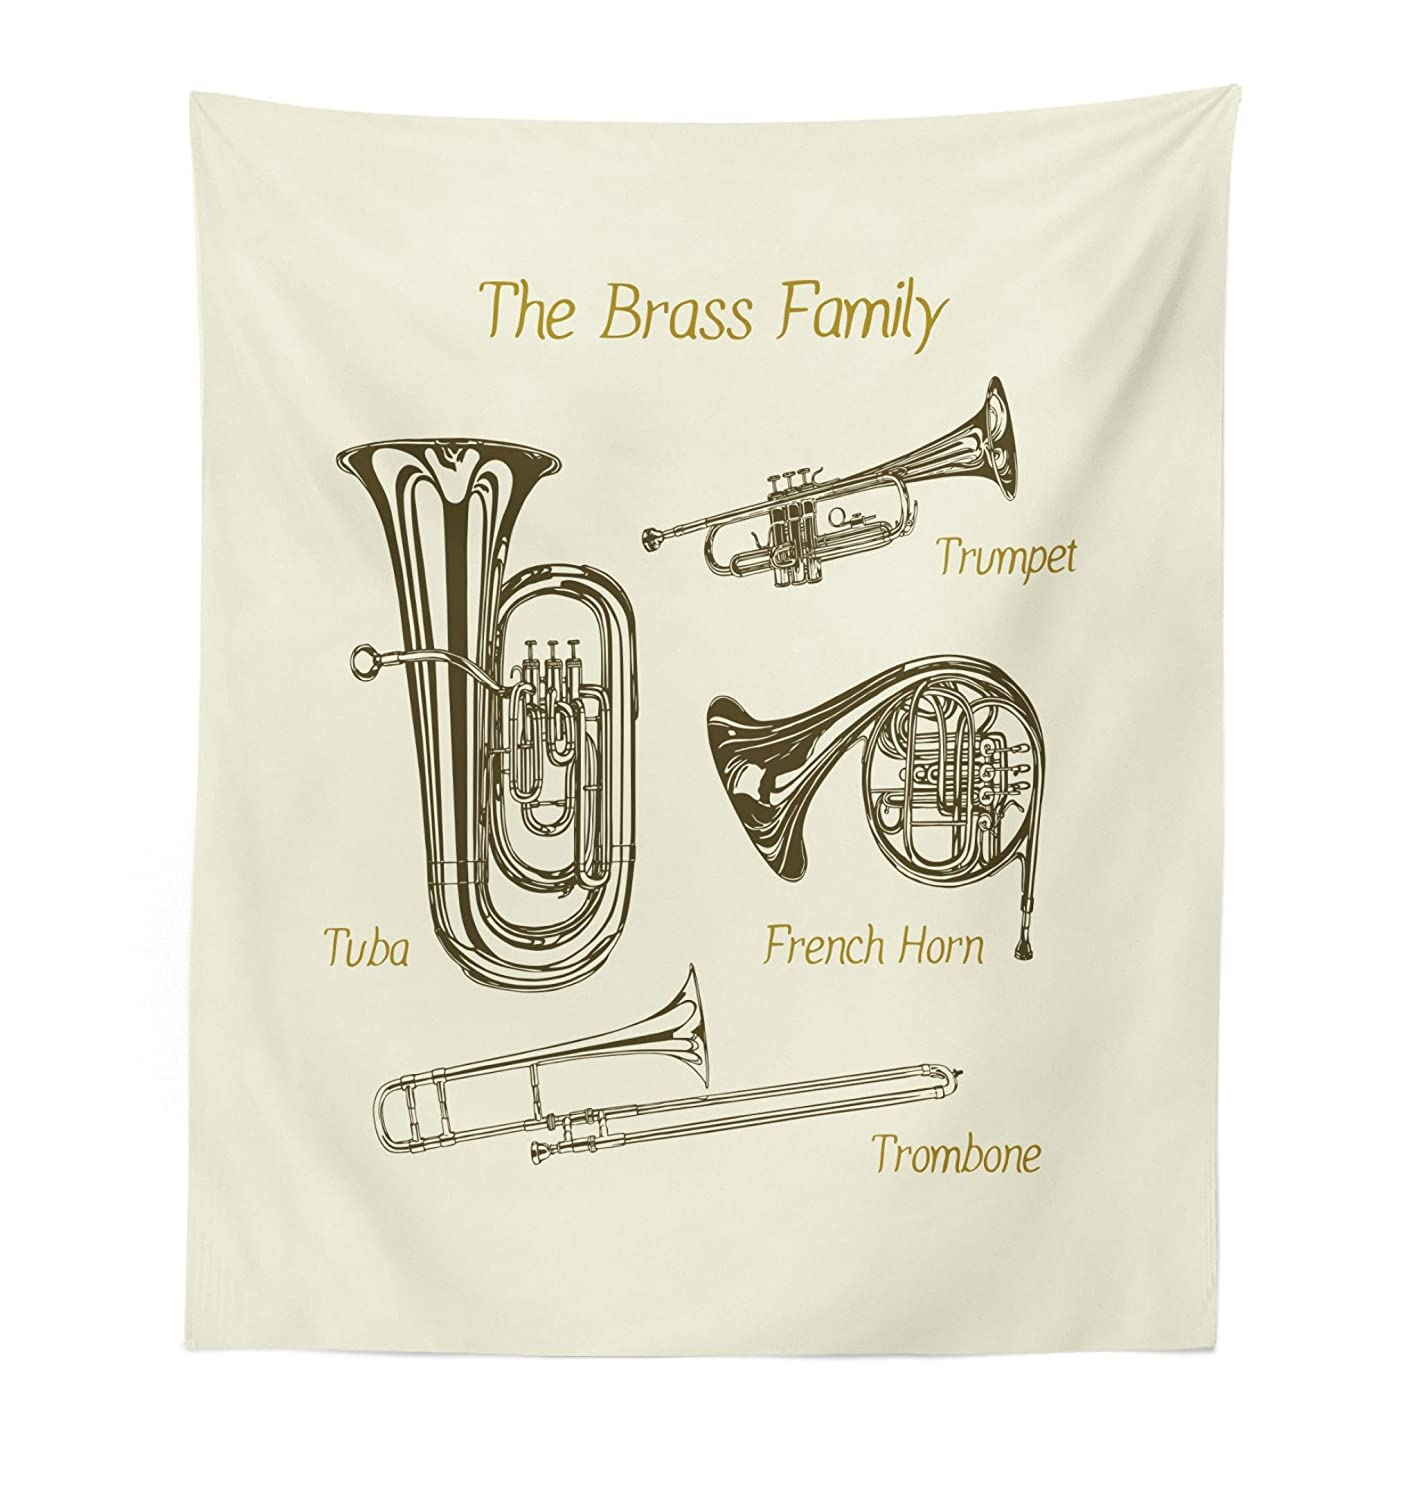 Fabric Wall Hanging Decor For Bedroom Living Room Dorm Lunarable Music Tapestry Brass Family Instruments Drawing